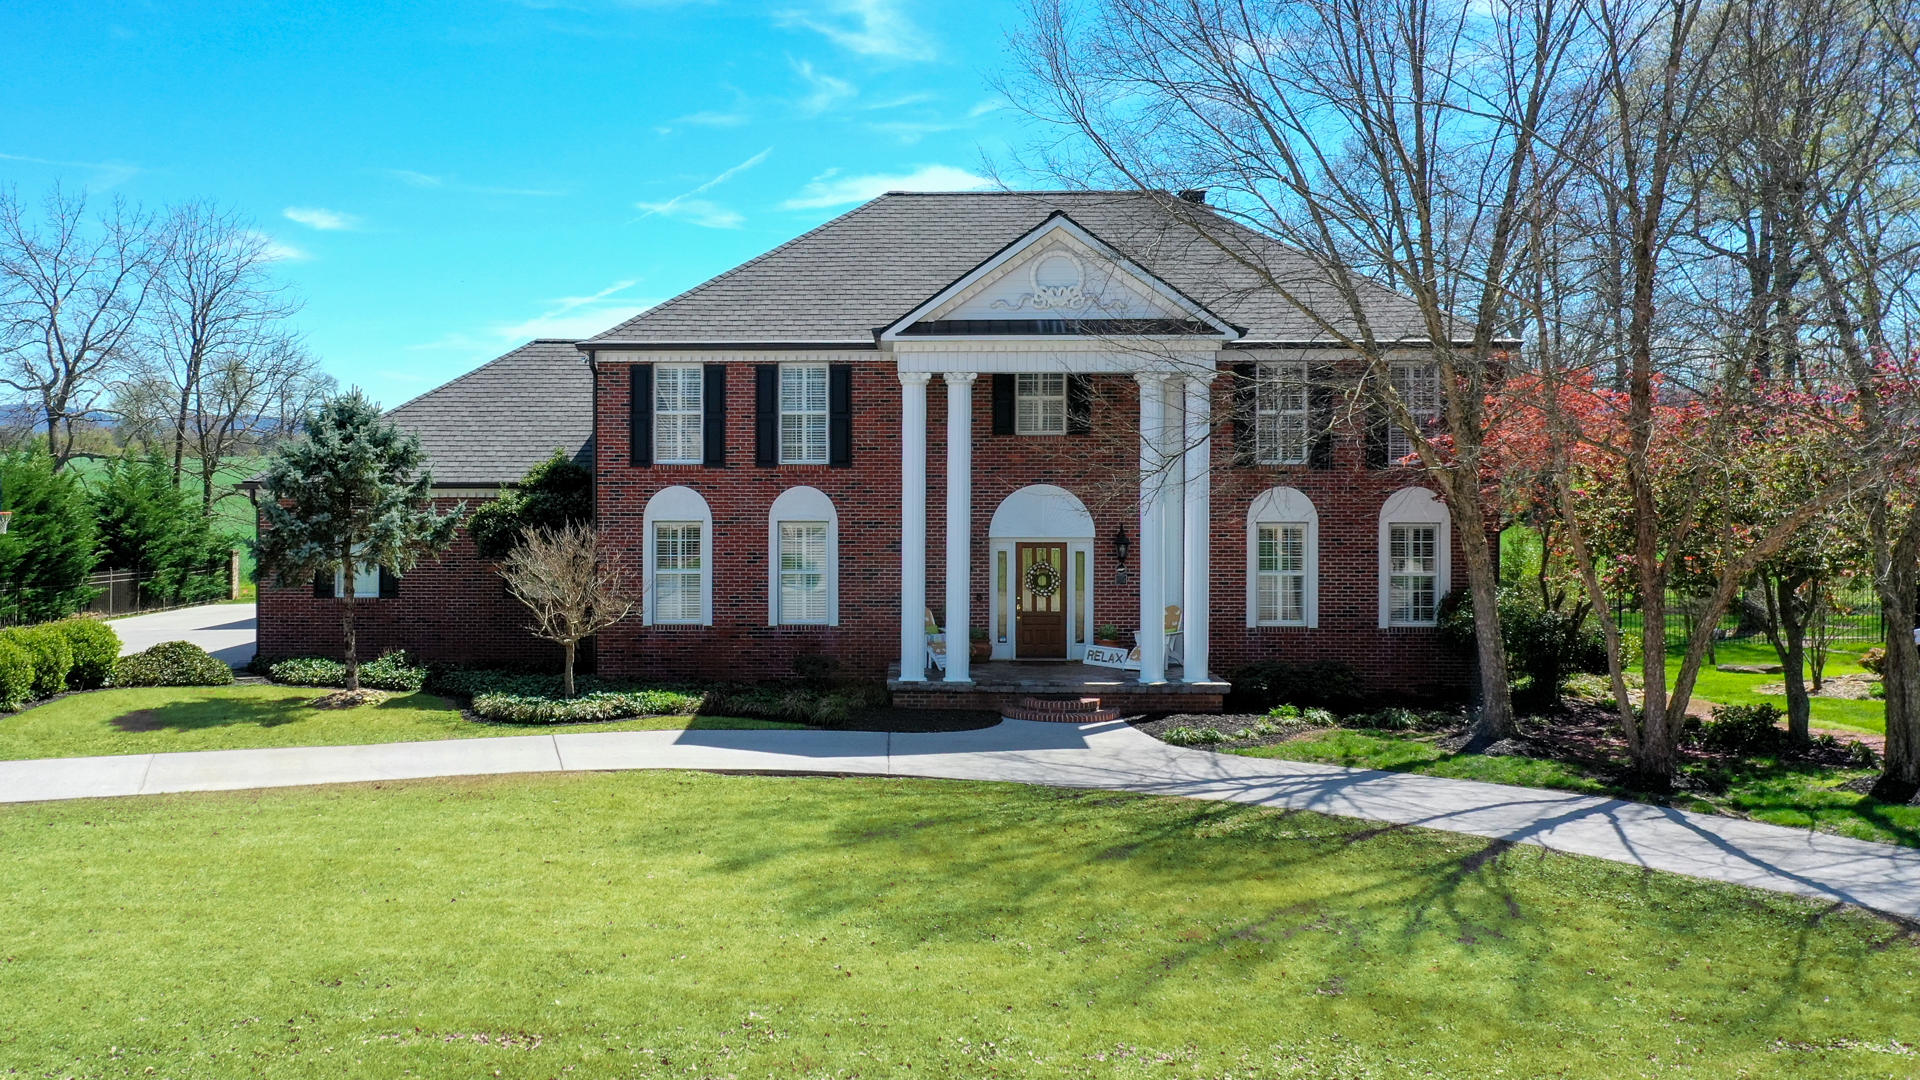 478 Broadmoor Drive, Maryville, Tennessee 37803, 5 Bedrooms Bedrooms, ,4 BathroomsBathrooms,Single Family,For Sale,Broadmoor,1112487